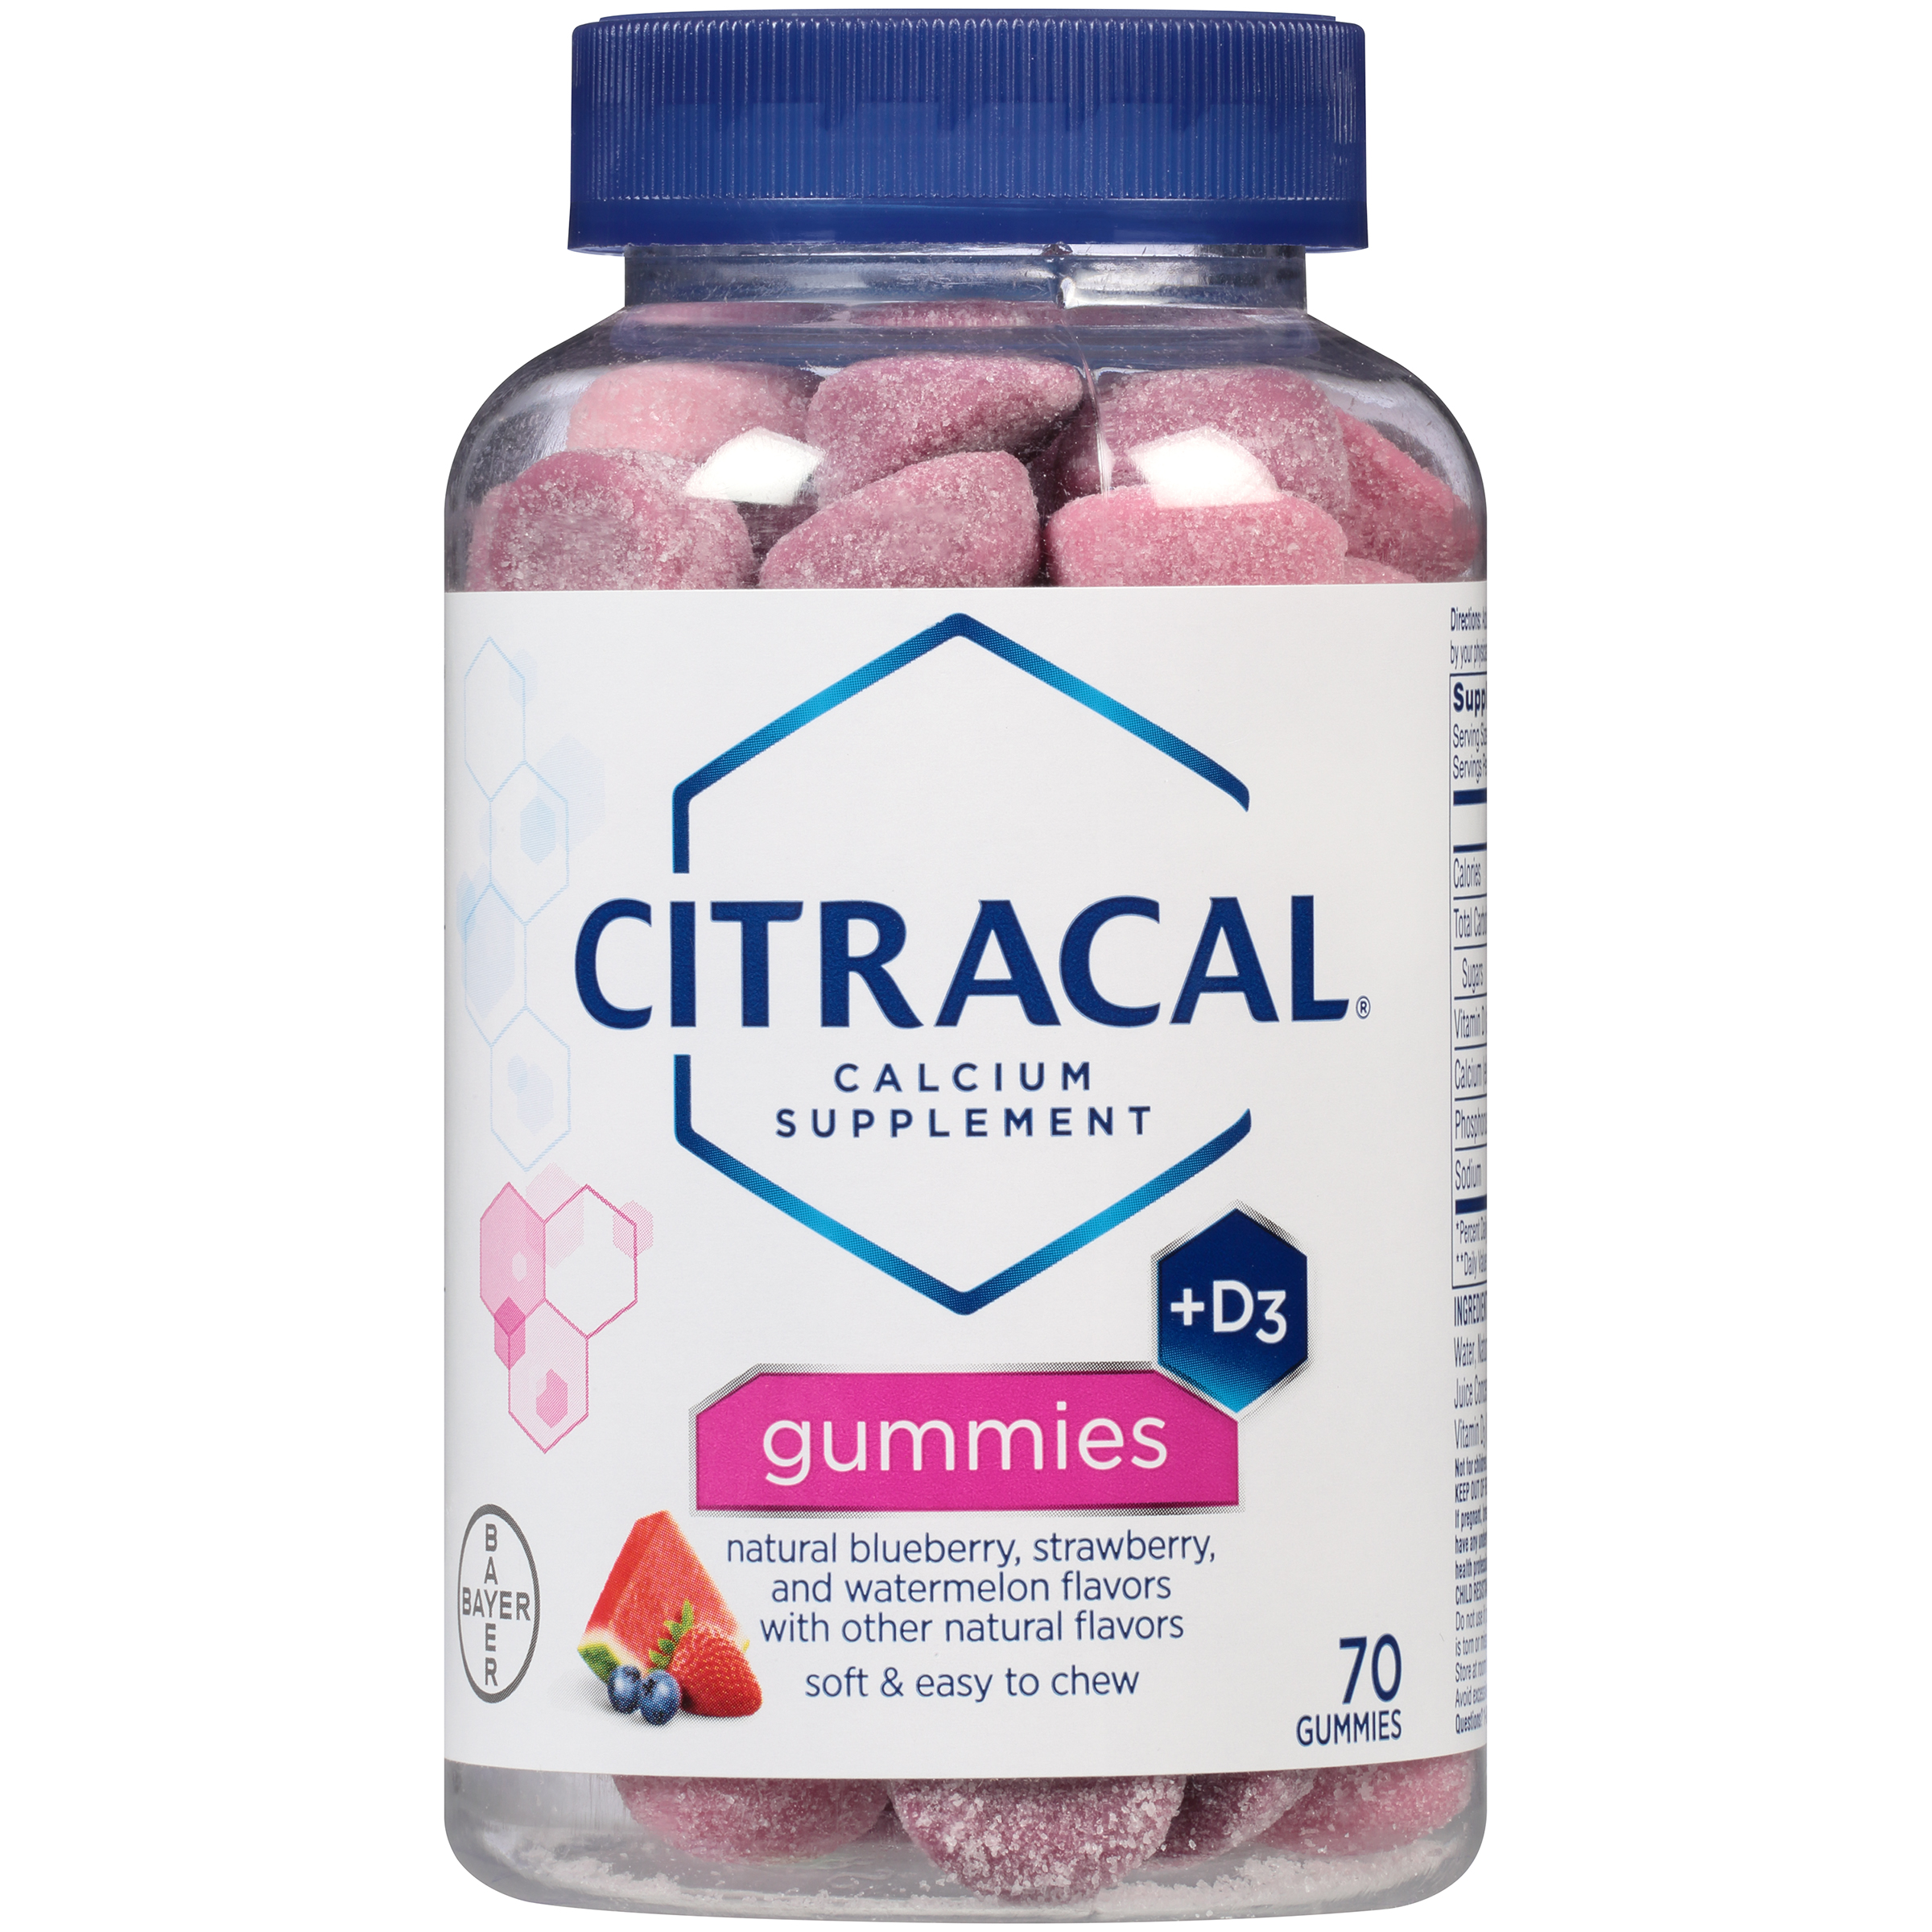 Citracal Gummies Calcium Supplement With Vitamin D3, 70 Count